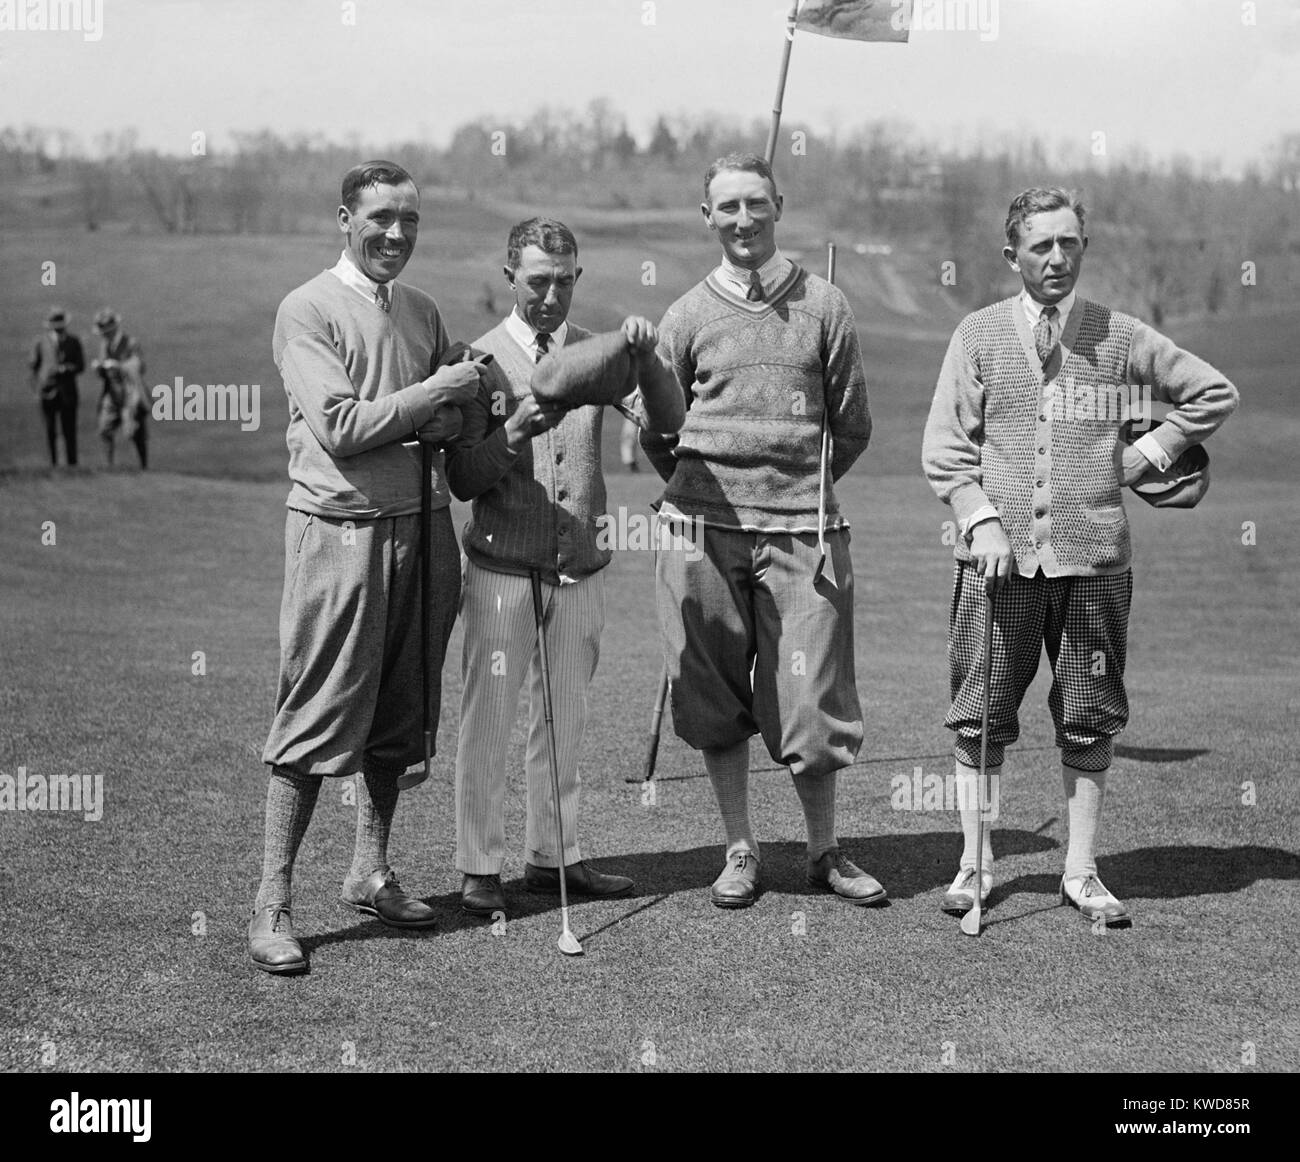 Golfers J.W. Ockenden, Fred McLeod, Arthur S. Havers, Jock Hutchison, April 22, 1924. McLeod and Hutchison were - Stock Image